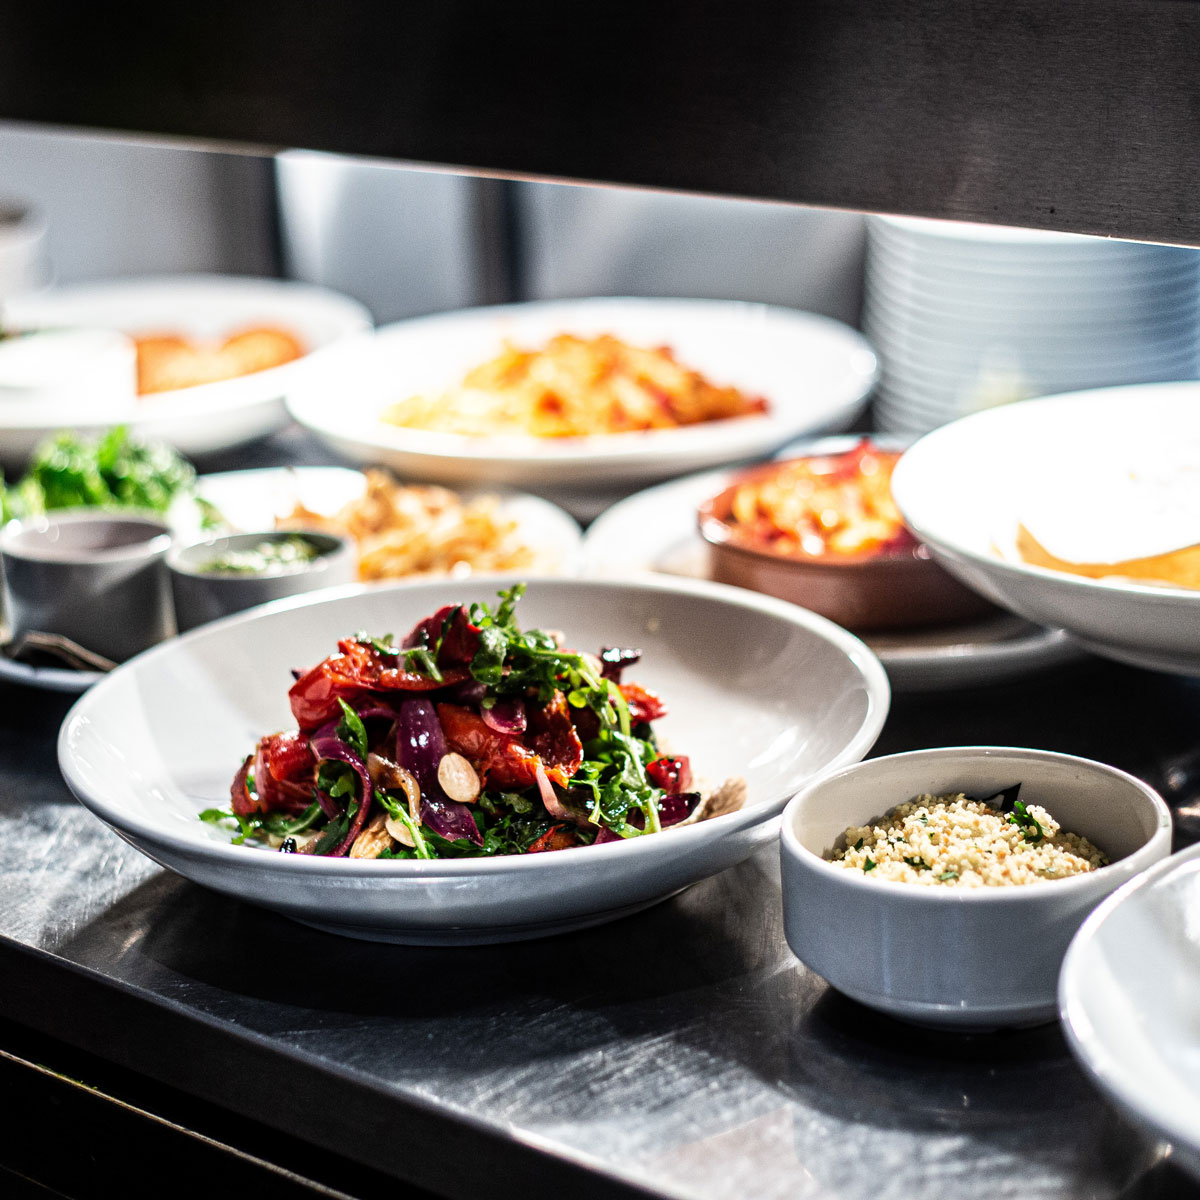 Photo of bowls of food in a kitchen, ready to be taken customers